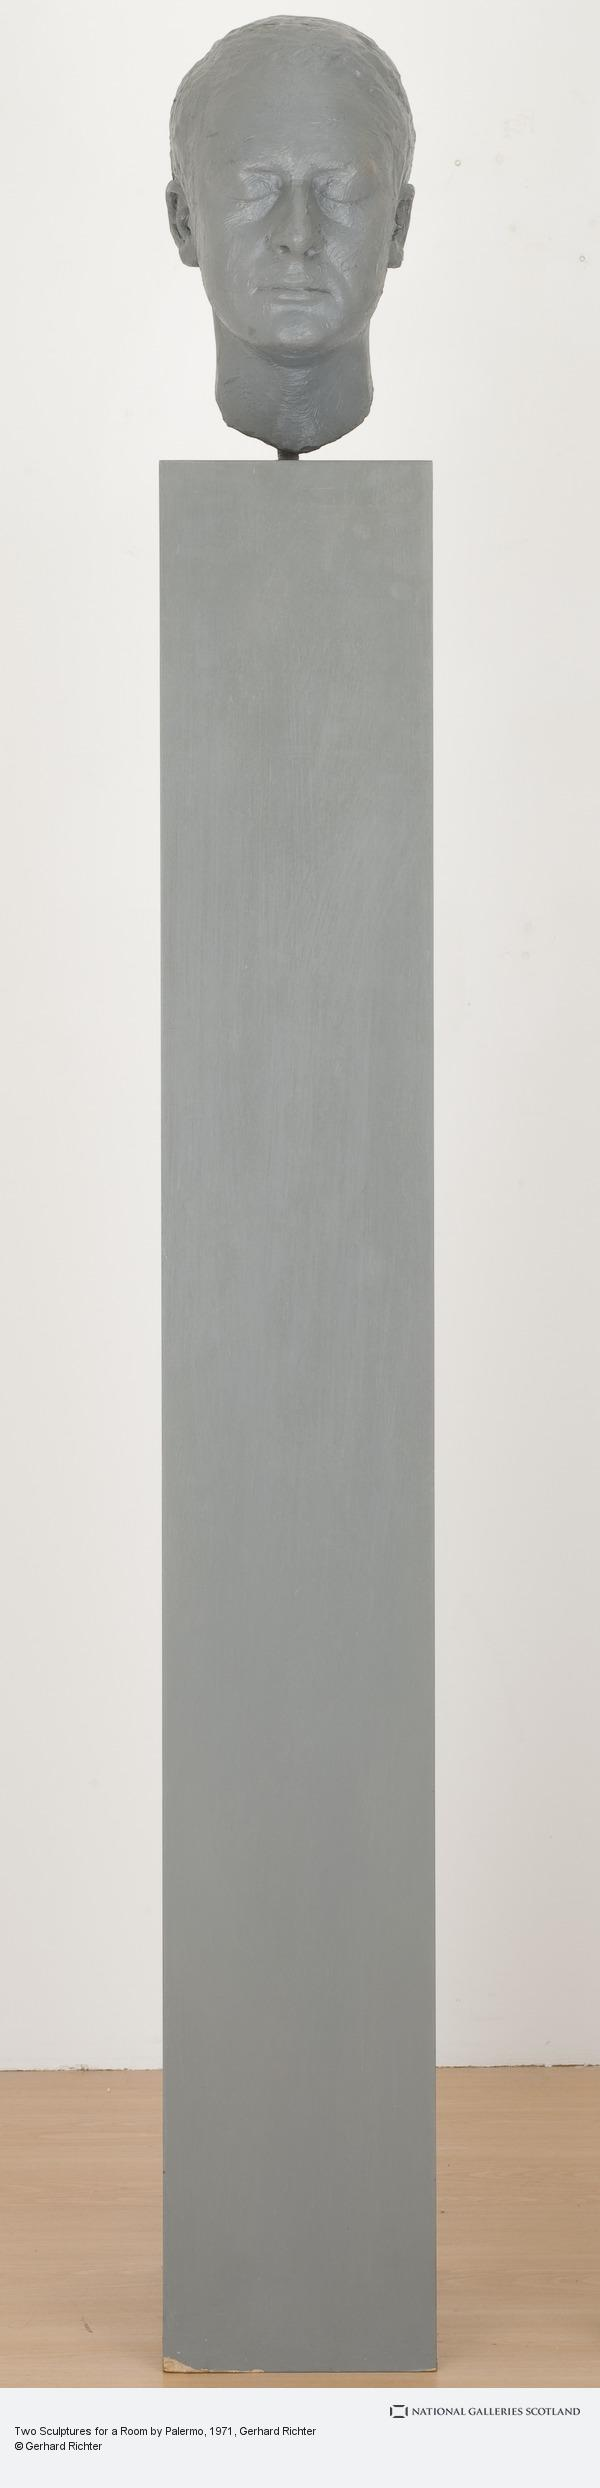 Gerhard Richter, Two Sculptures for a Room by Palermo